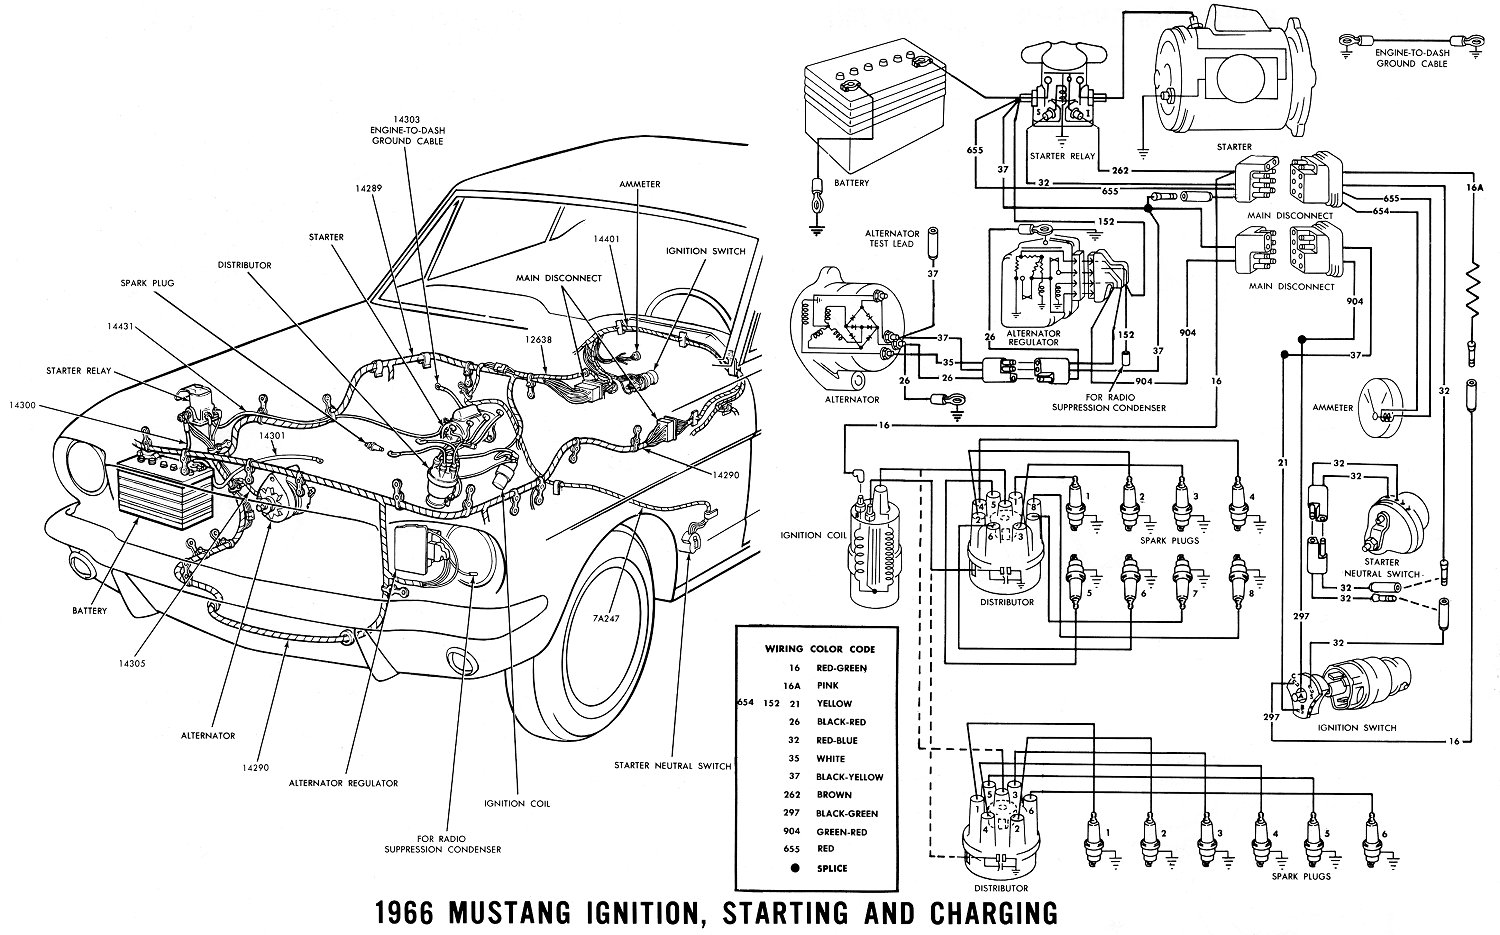 Ford Mustang 289 Engine Diagram Wiring Diagrams Digital